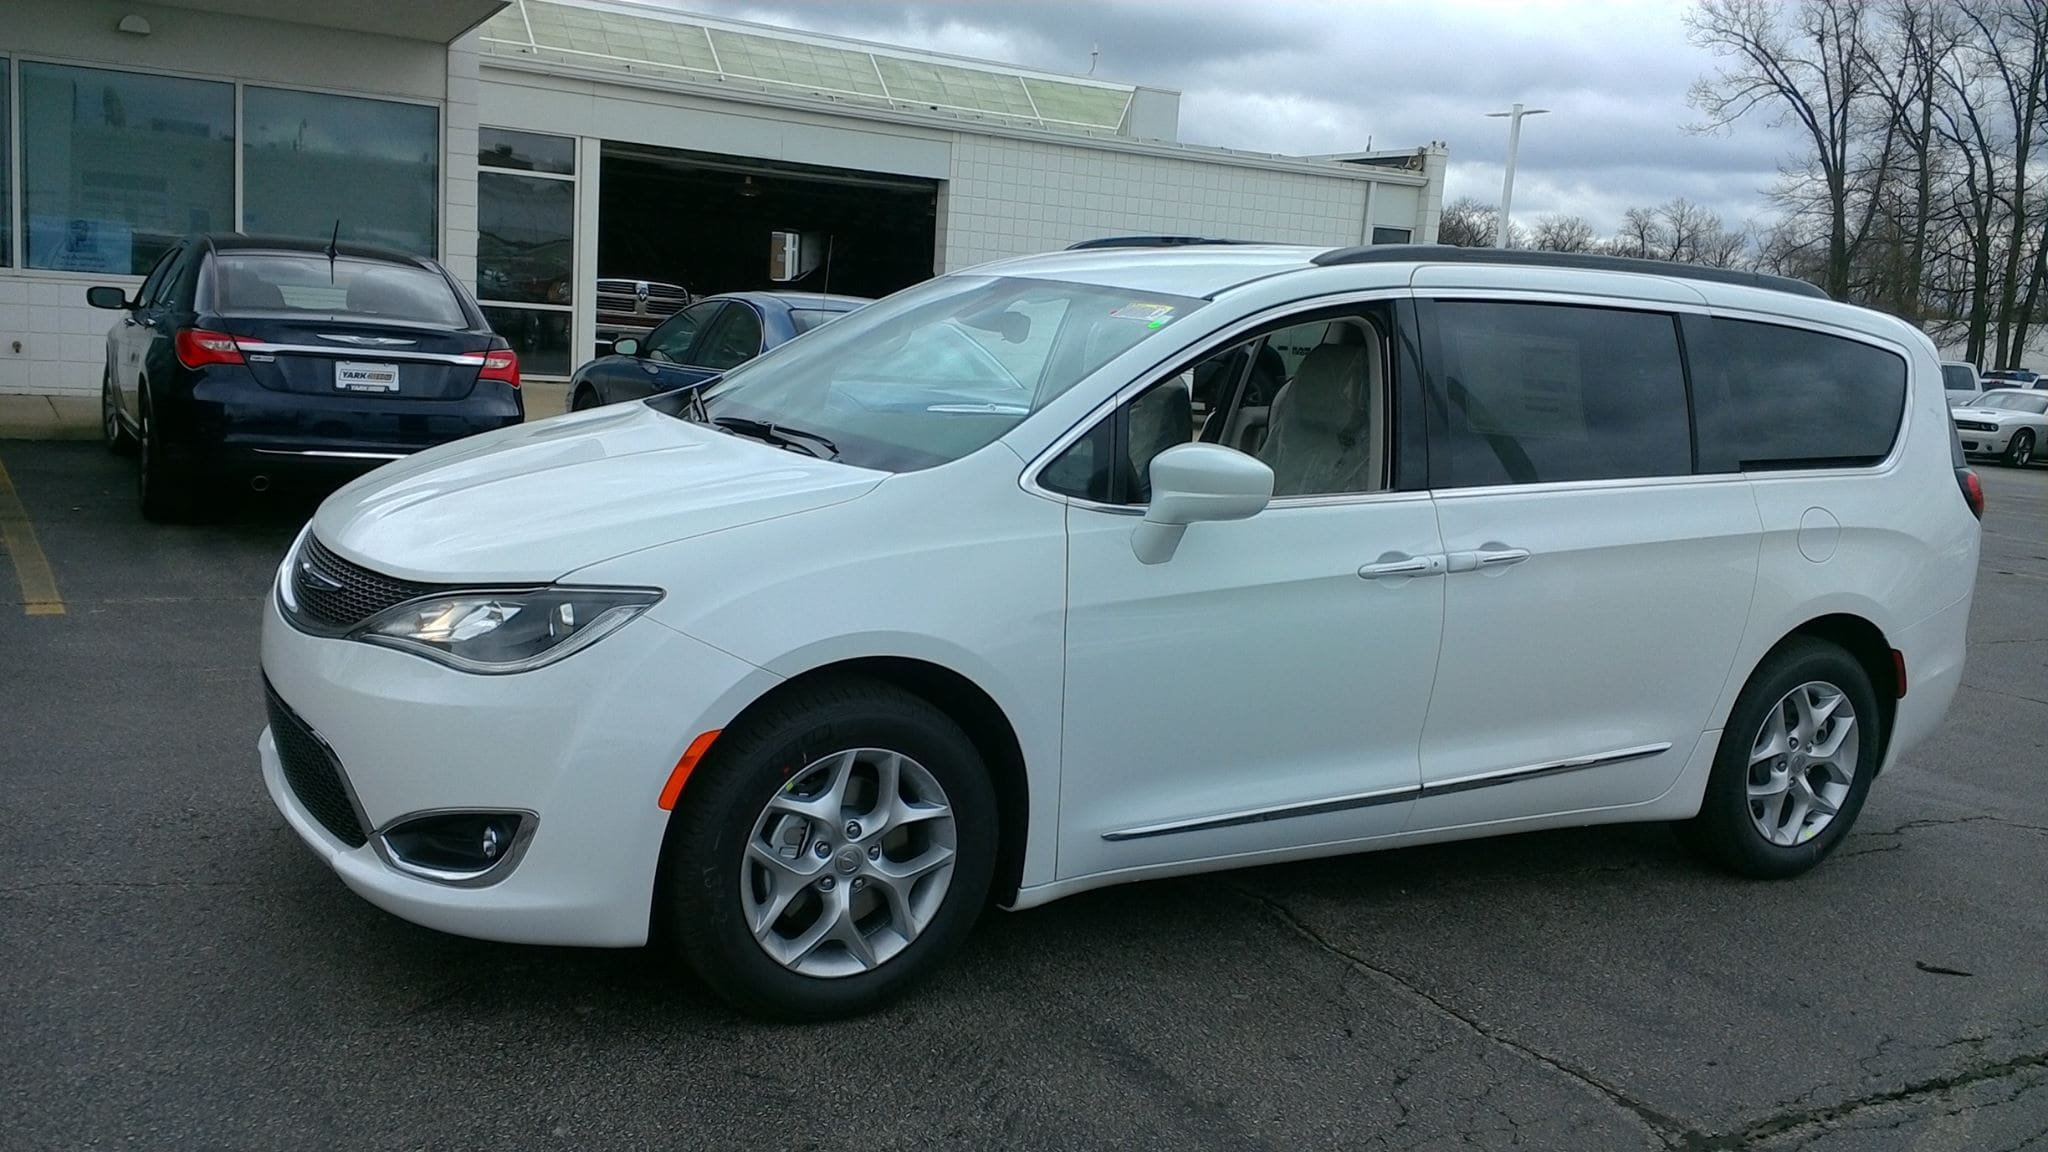 2017 Chrysler Pacifica Now Available at Yark in Toledo